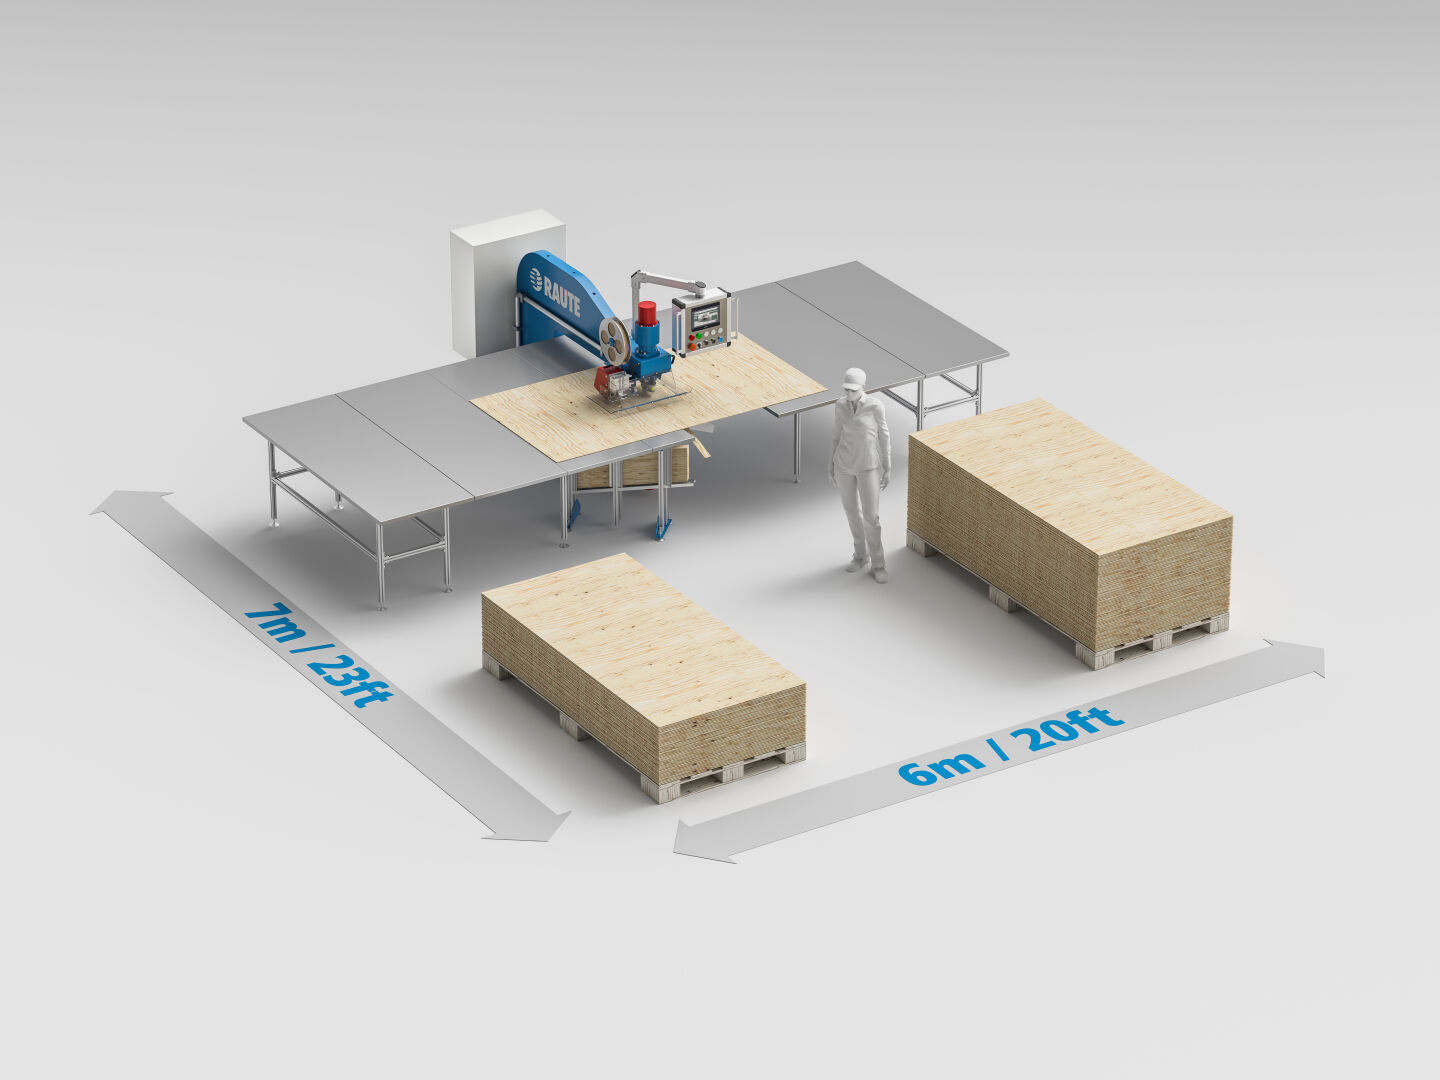 The machine is plug & play, and requires very little floor space. You need only 6x7m needed for veneer stacks